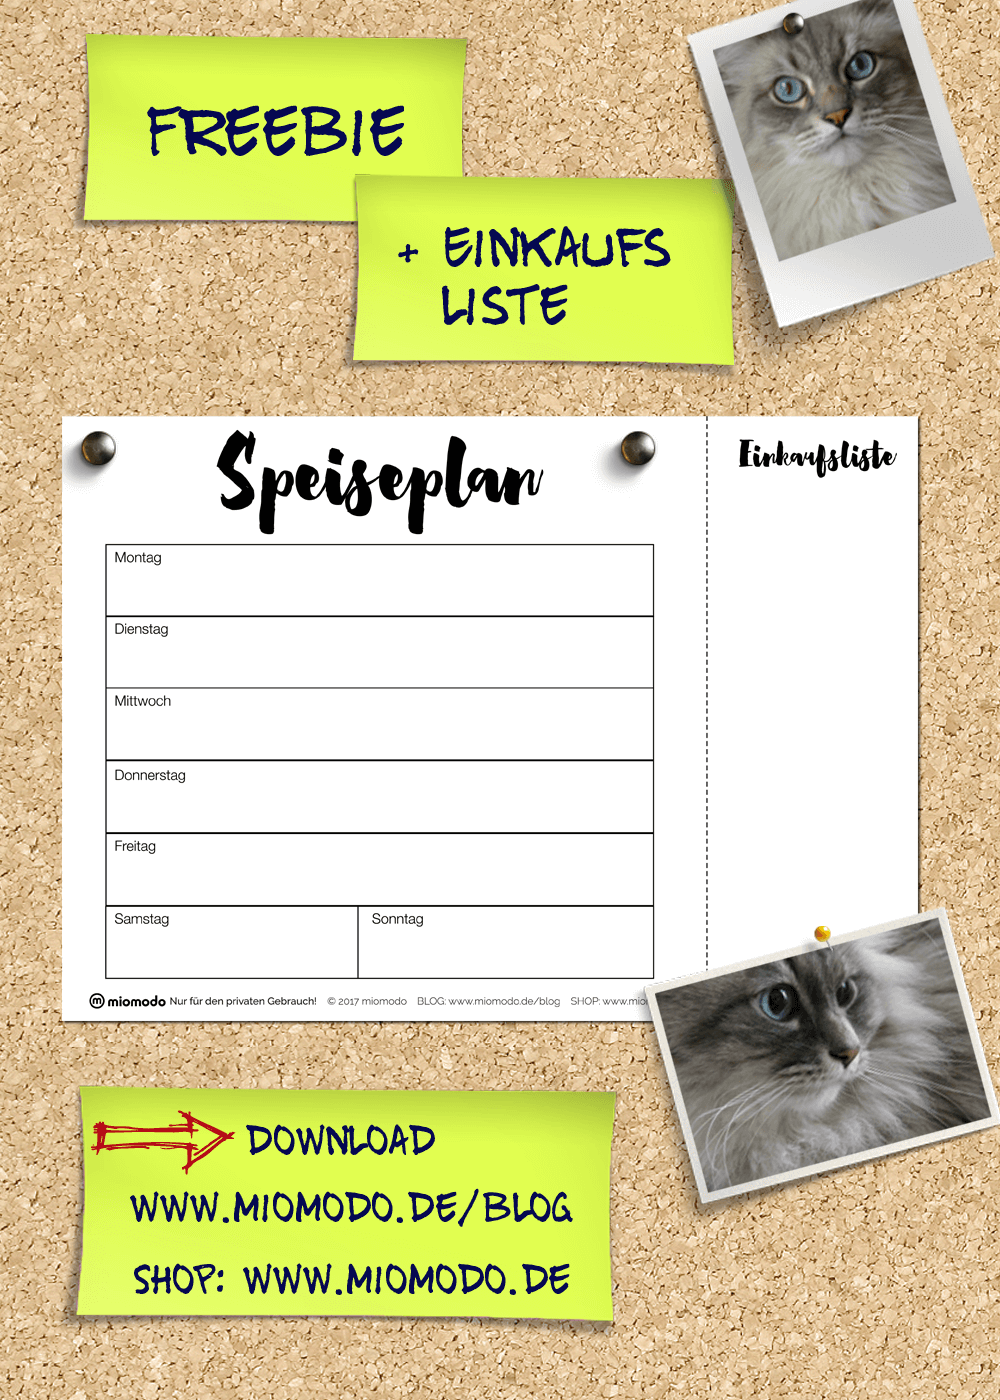 Speiseplan Kostenloser Download Miomodo Diy Blog